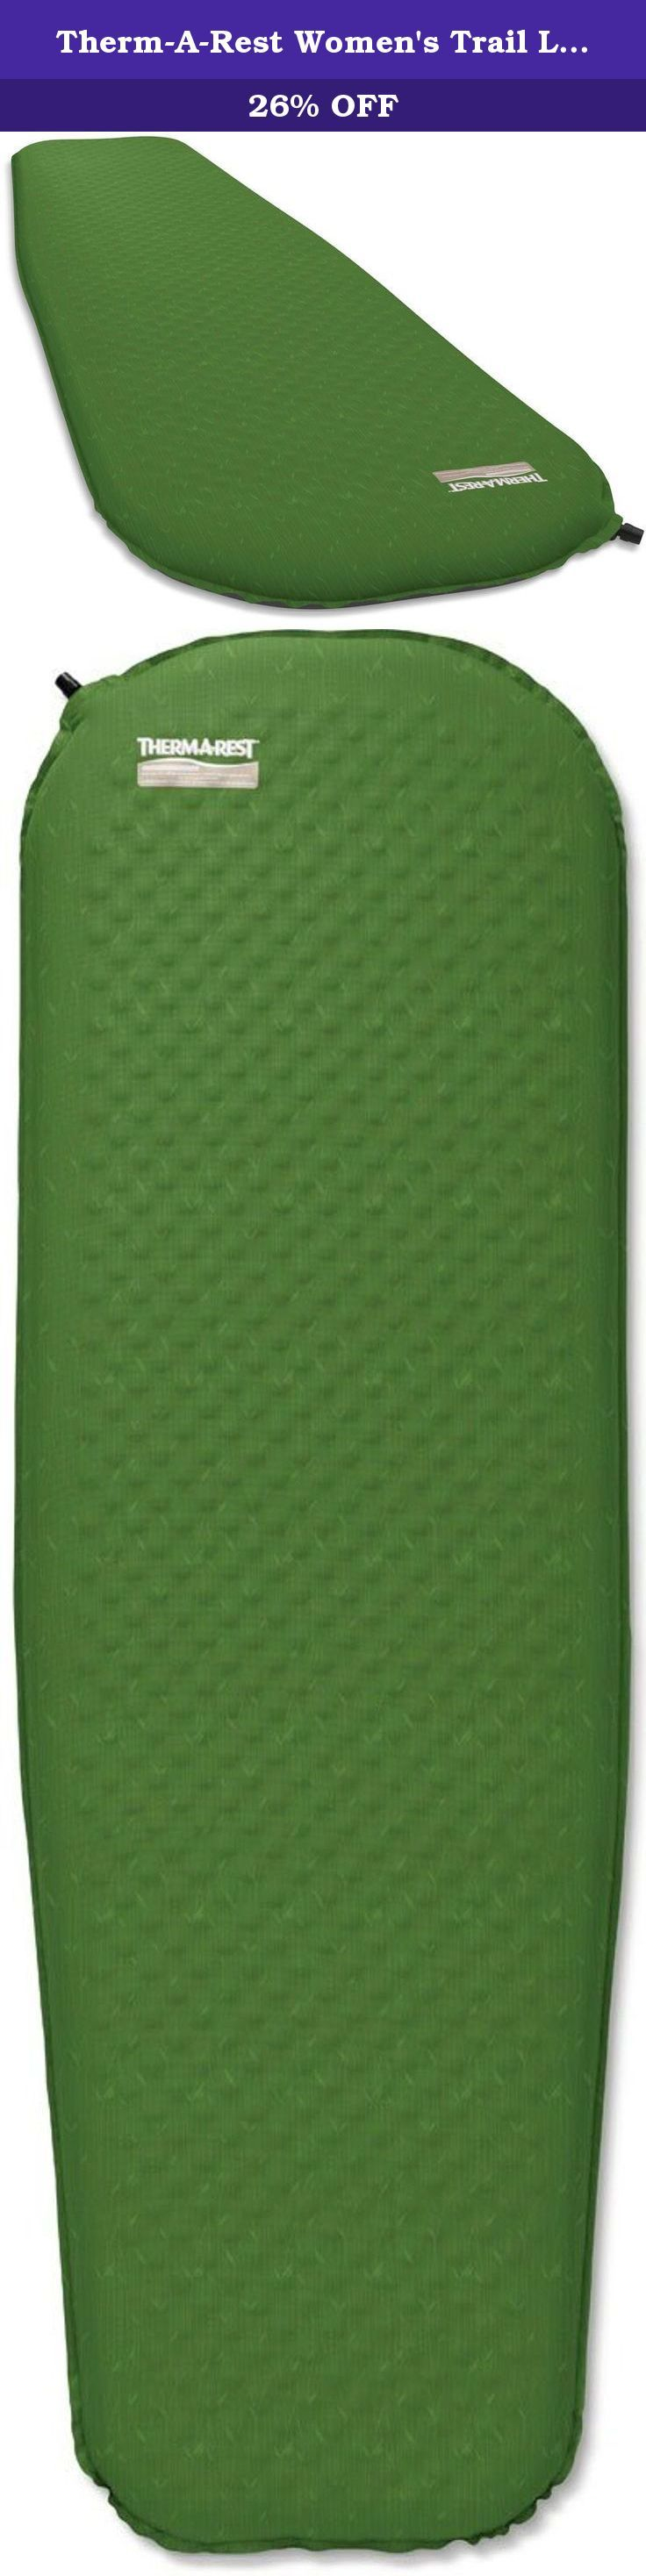 Therm-A-Rest Women's Trail Lite Mattress, Clover Print, Large. Like the original Trail Lite mattress, the Women's version offers an outstanding combination of comfort, compactness and value making it one of the best all-around camping mattresses available. Specifically for women and cold sleepers, fewer die-cuts in the hip, torso and foot areas add critical warmth and support. Die-cut foams elsewhere reduce weight and bulk and a new, straighter torso increases the sleep area and makes for...